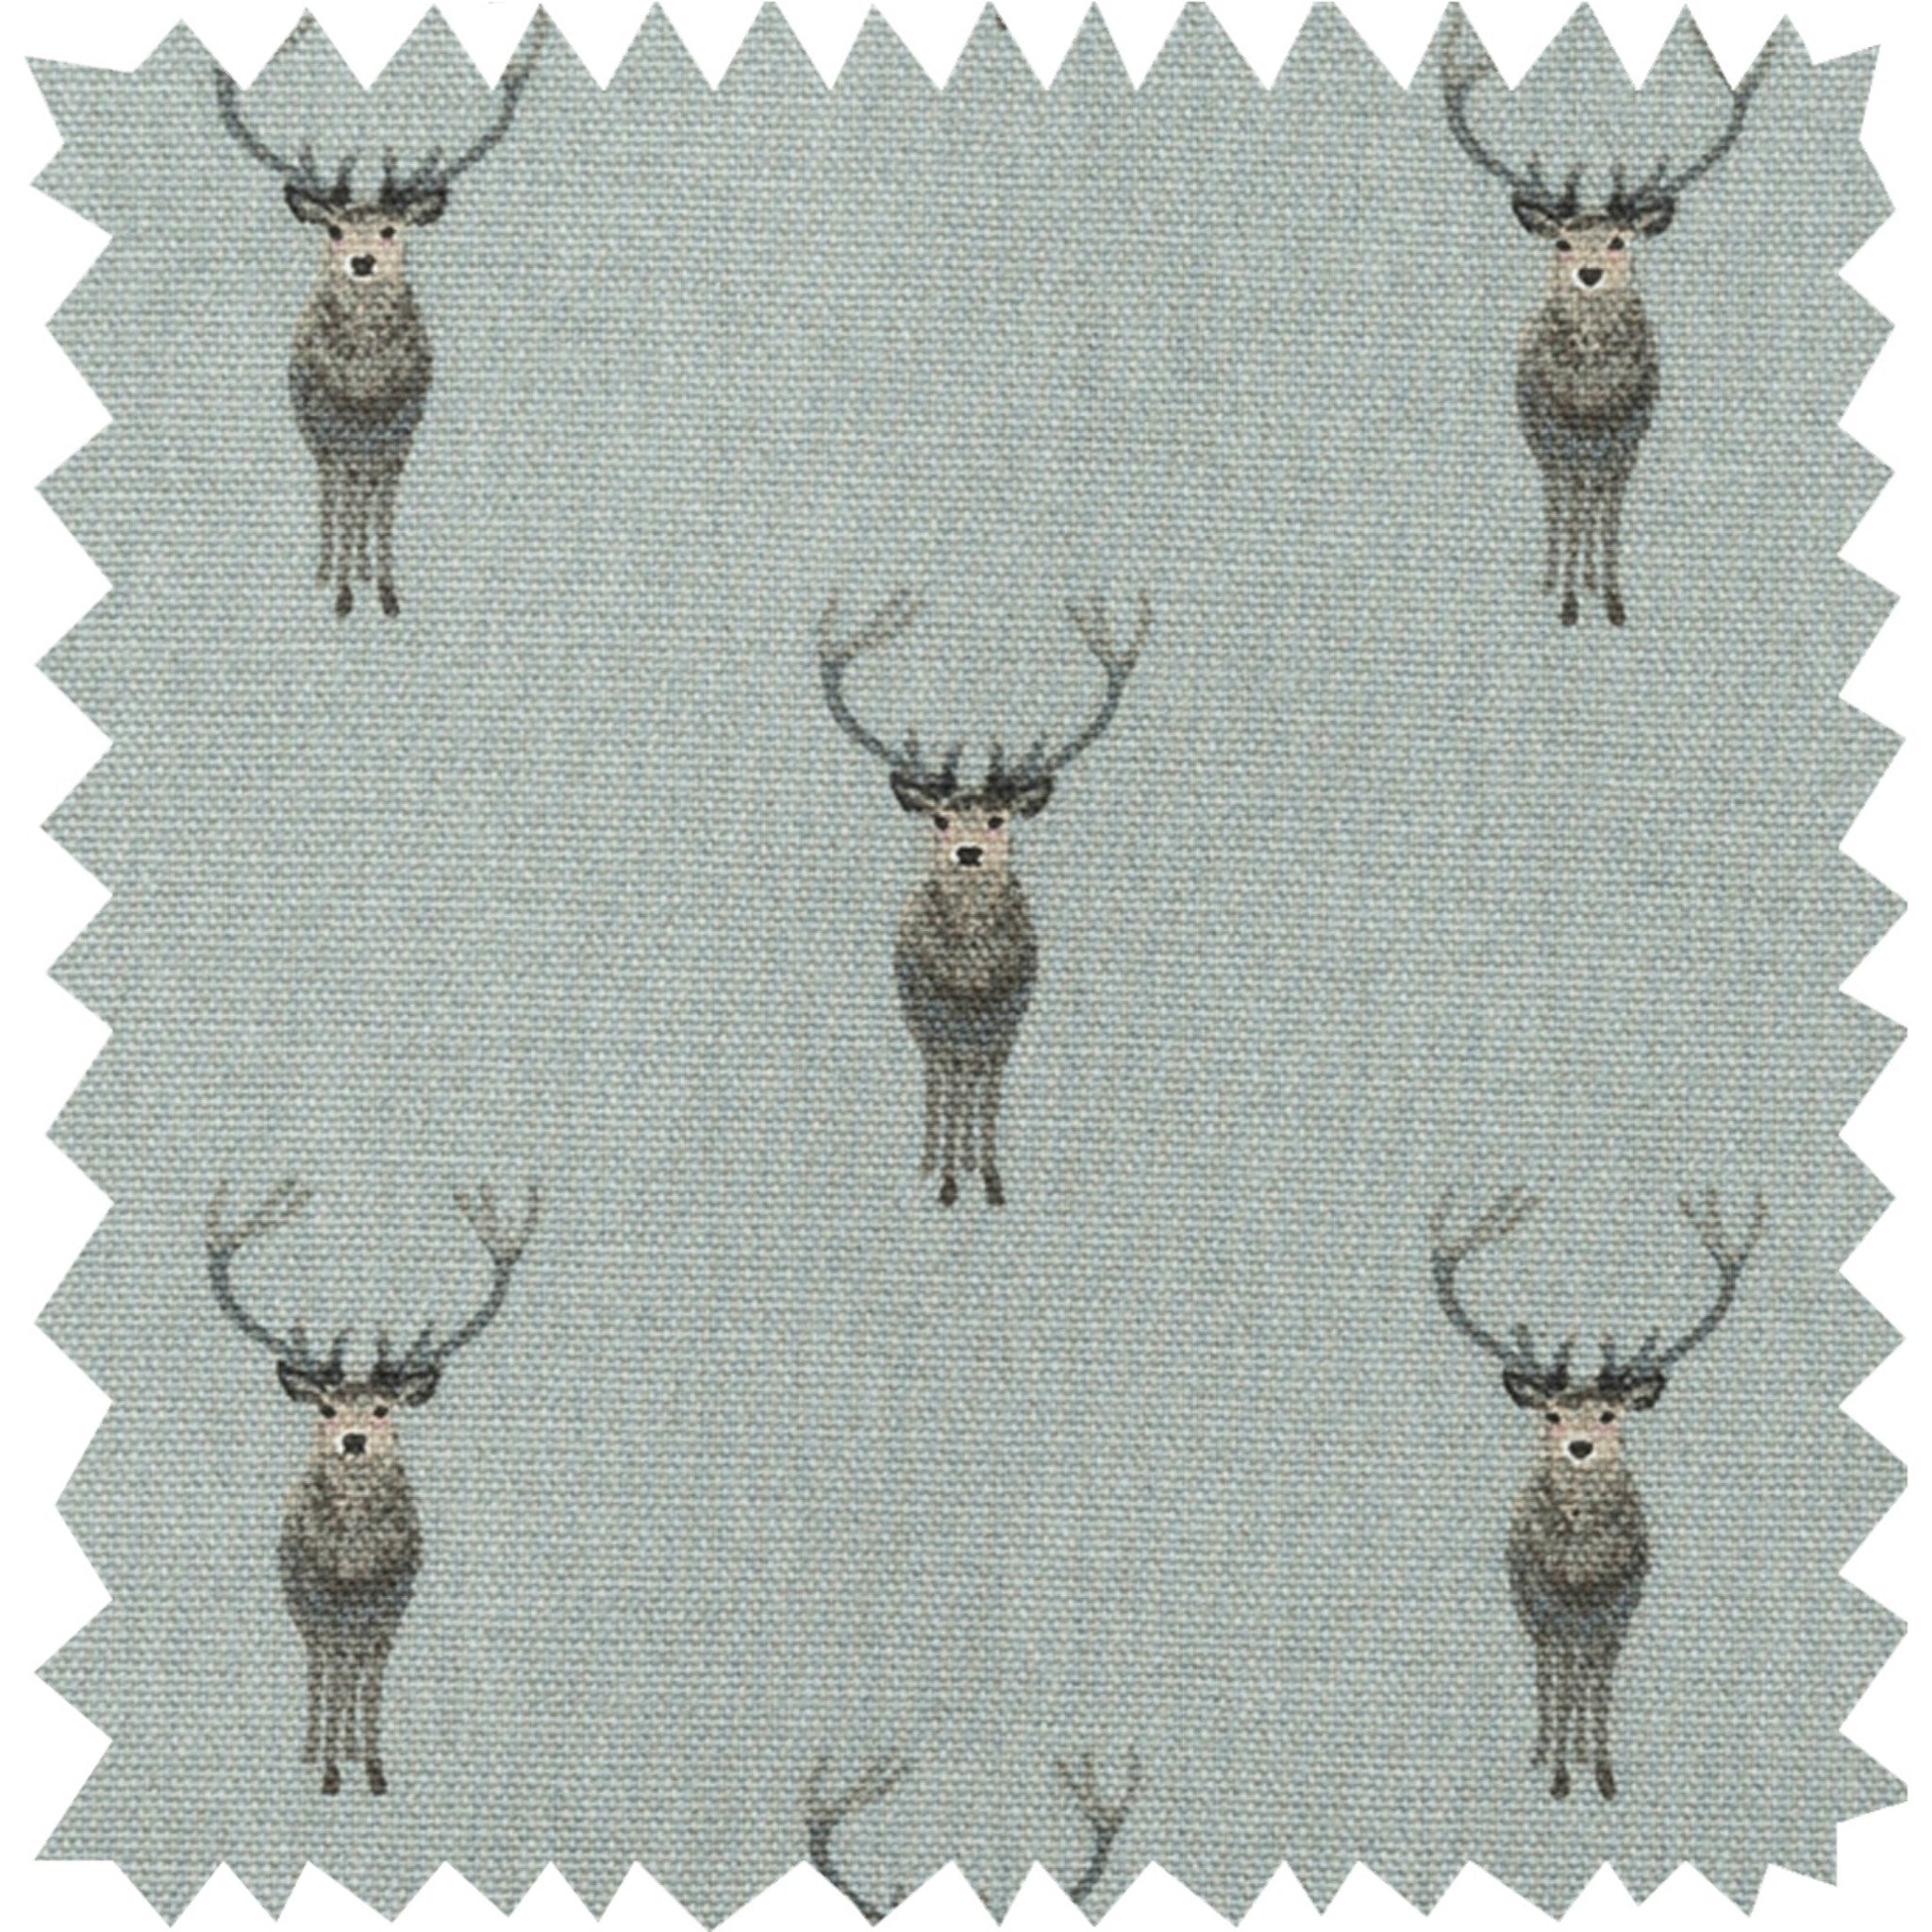 Hob Covers by Sophie Allport - Dales Country Interiors